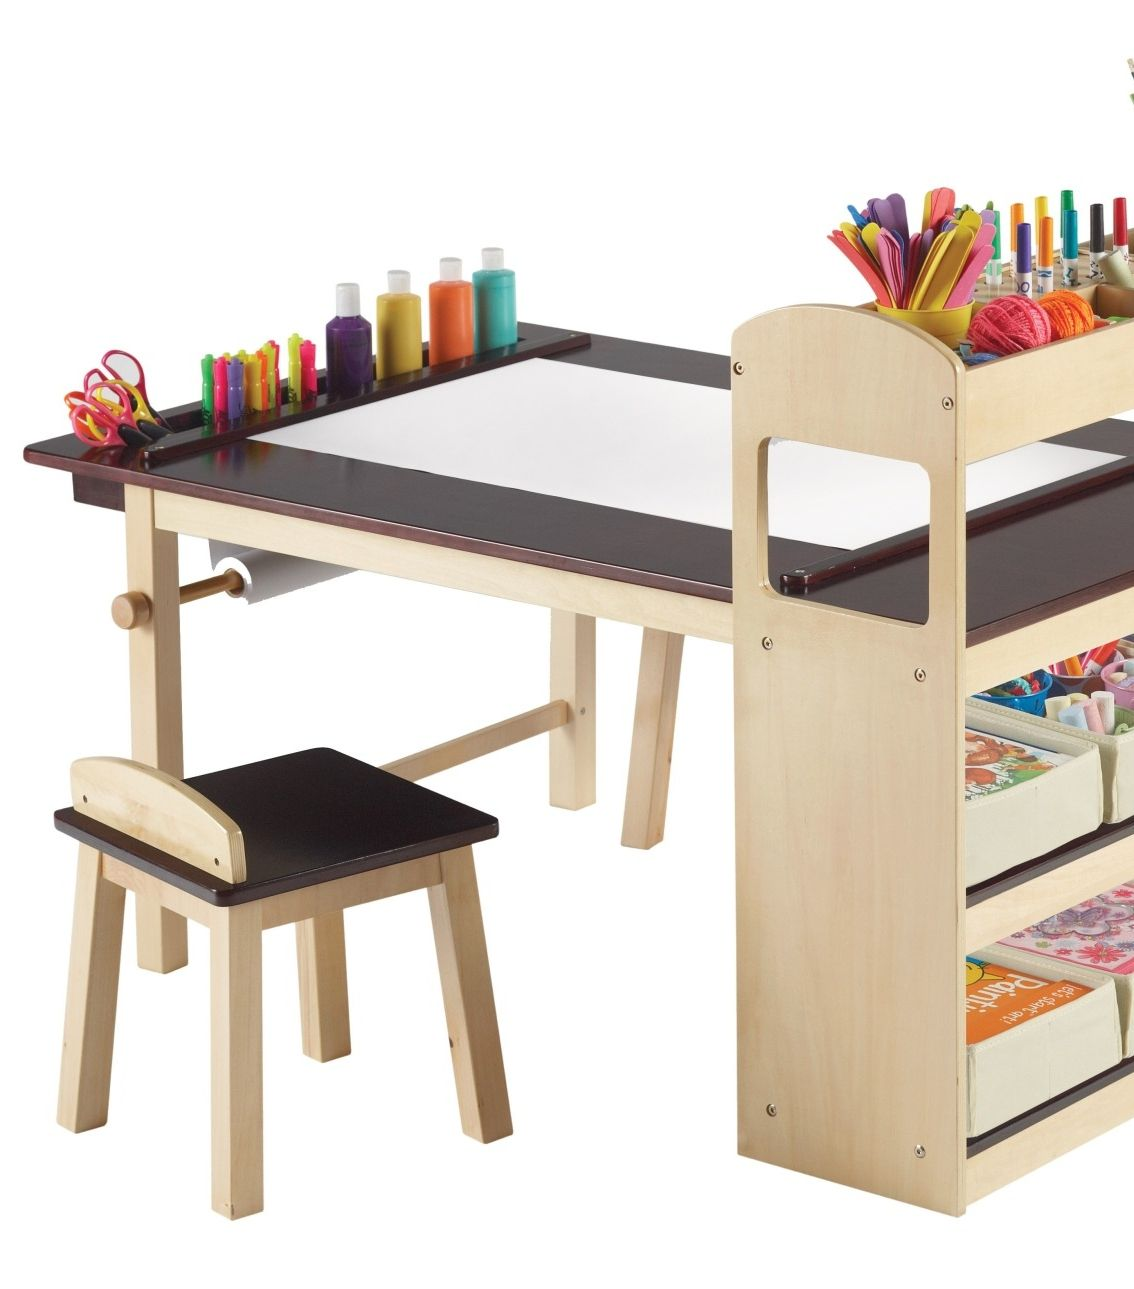 Kids Furniture And Toys You Ll Wish Were Made For Adults Modern Kids Table Kids Art Corner Kids Art Table